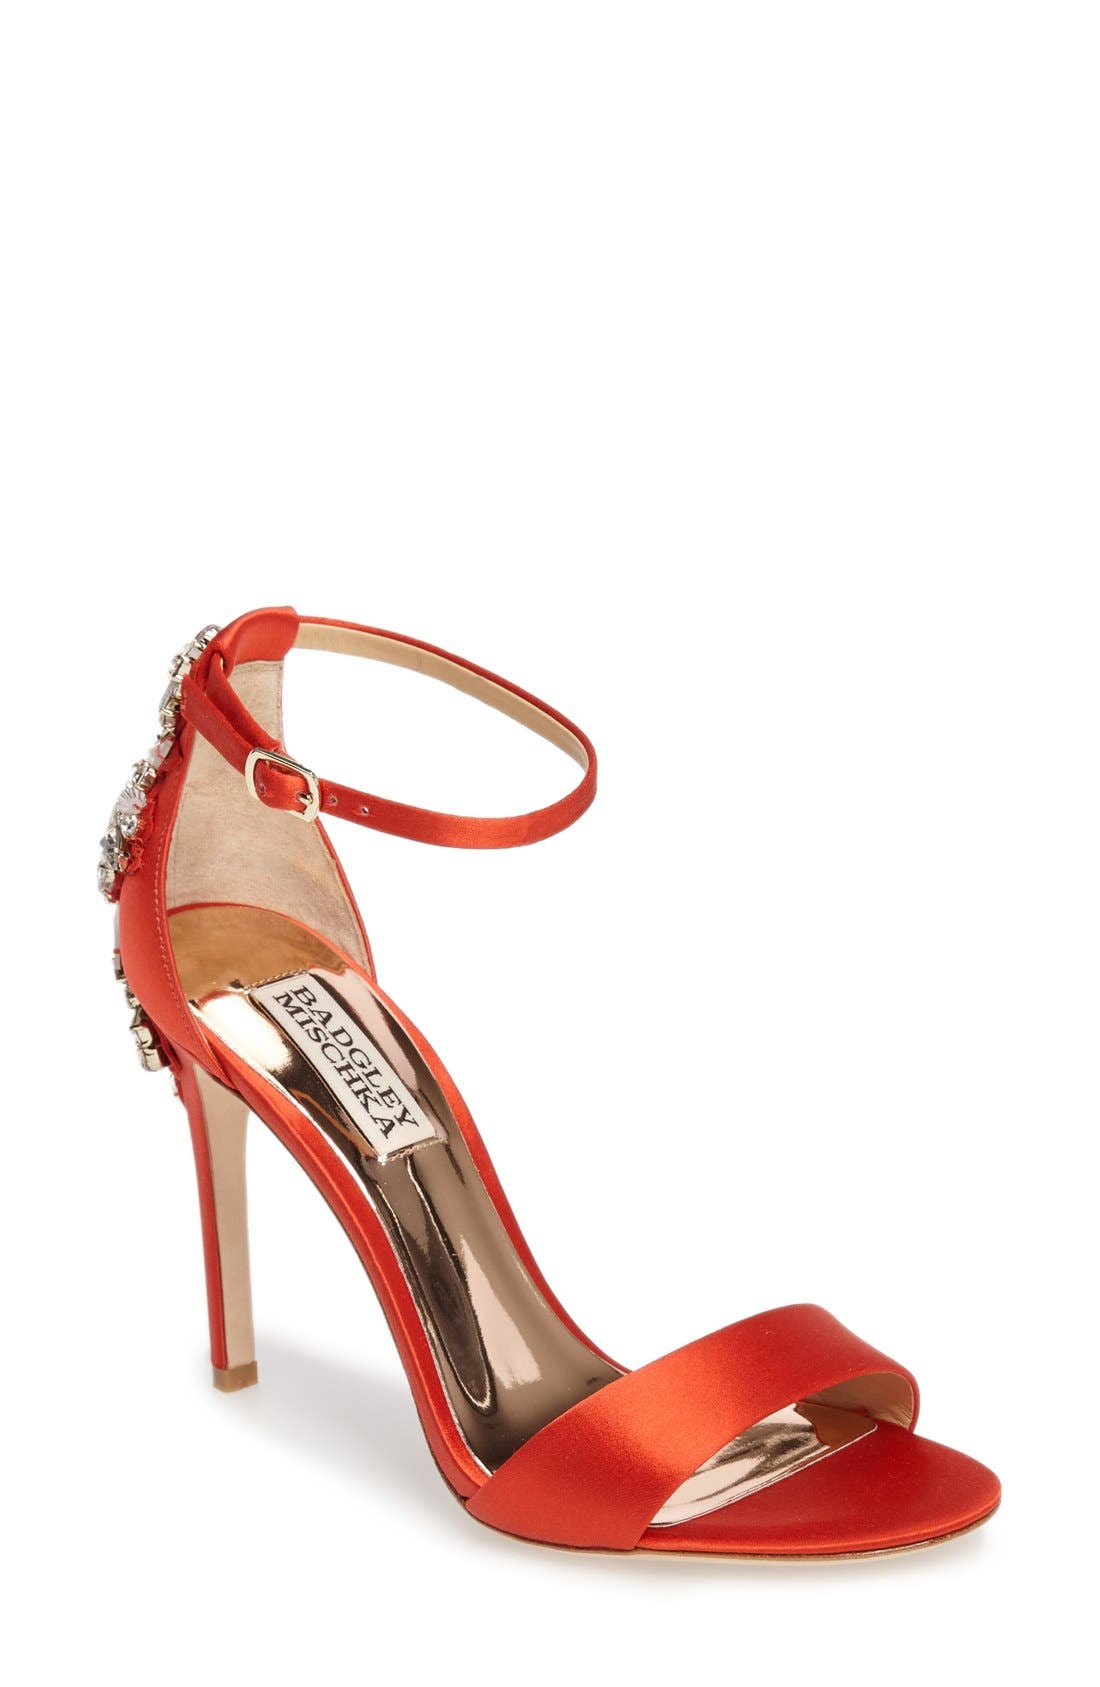 Main Image - Badgley Mischka Bartley Ankle Strap Sandal (Women)